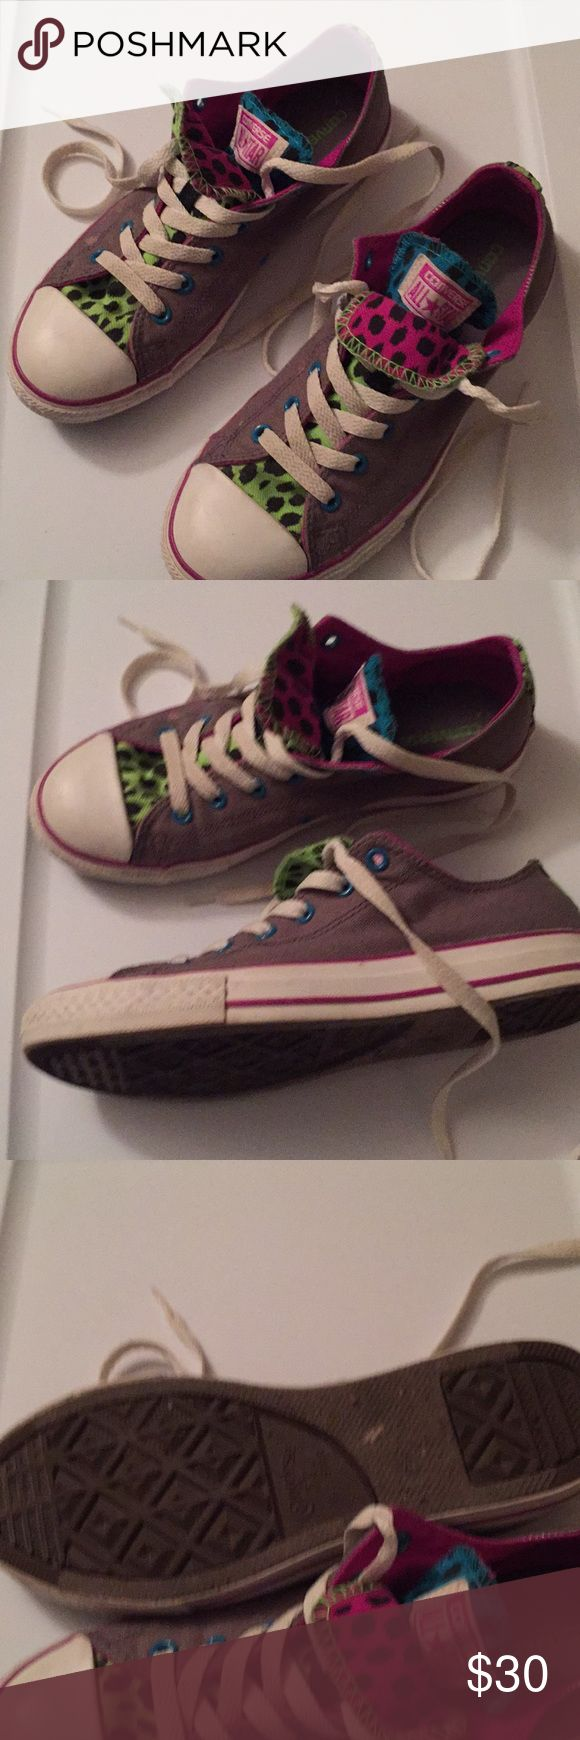 Converse Double tongue Chuck  Taylor in very good condition few spots  on front front  sneakers see pics size 5 junior or women's size 7 Converse Shoes Sneakers